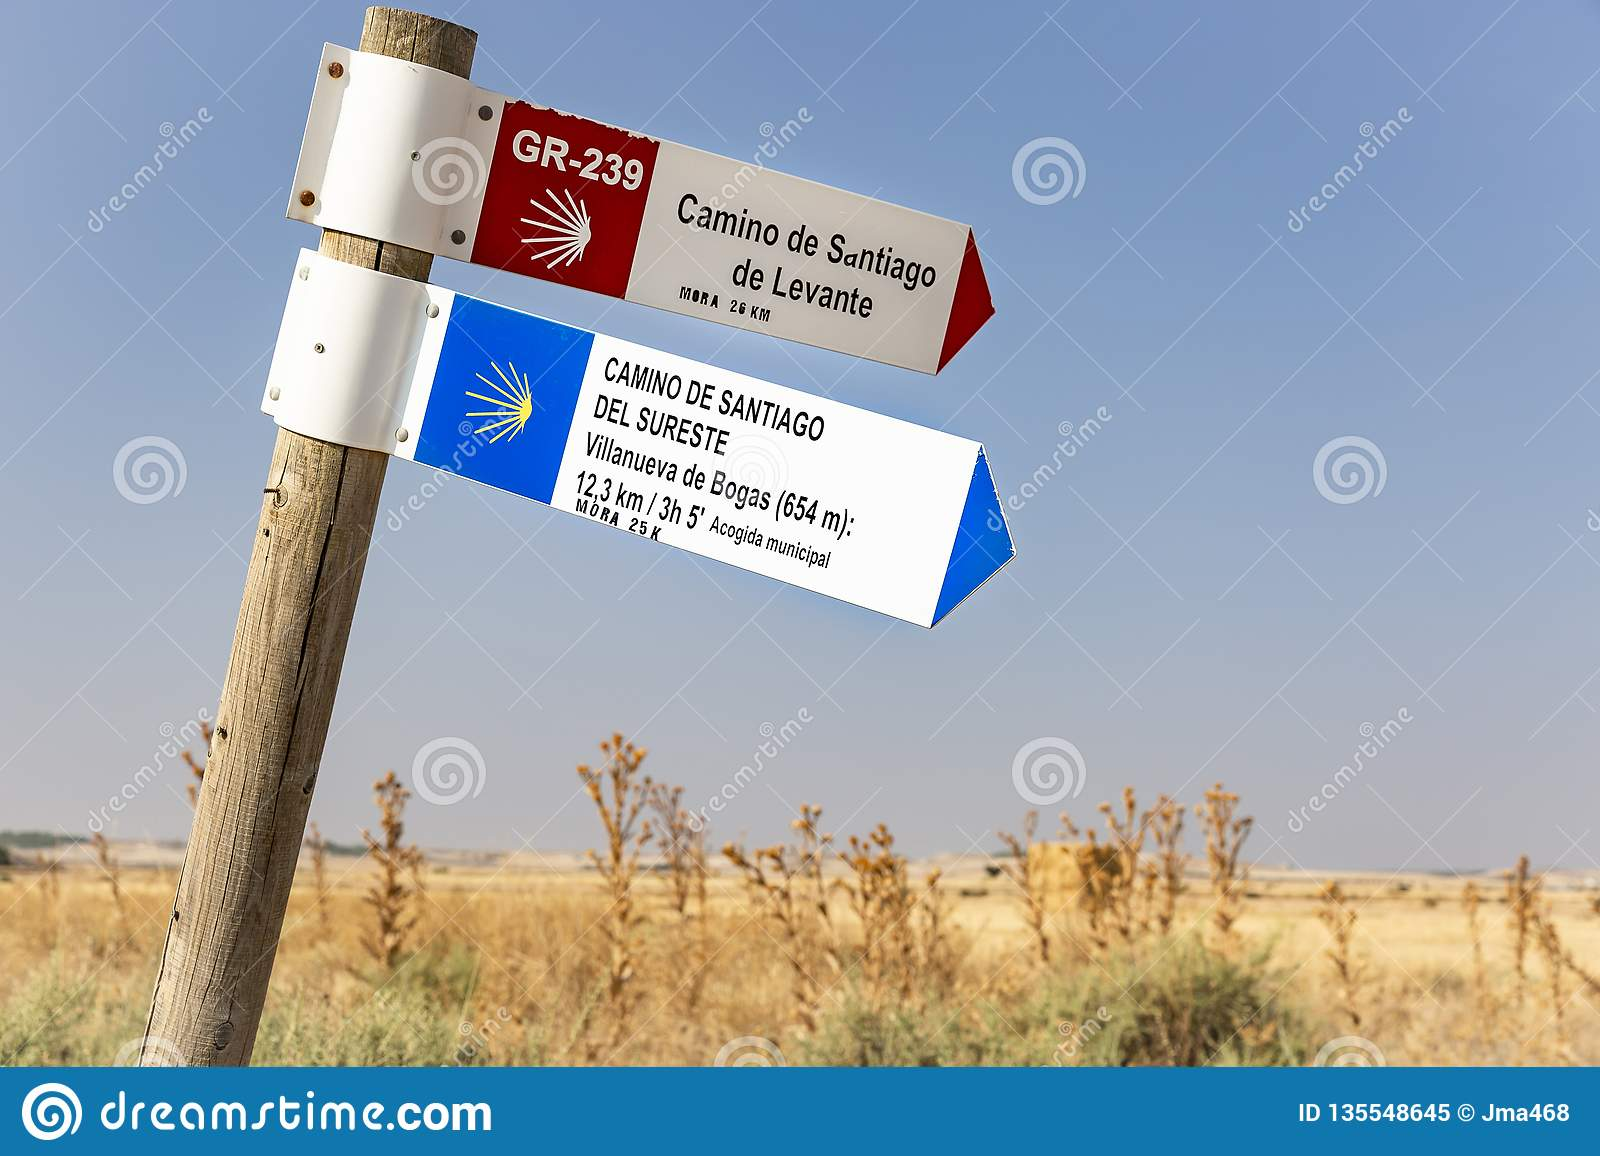 Camino Gas Natural Camino De Santiago De Levante And Del Sureste Signpost In The